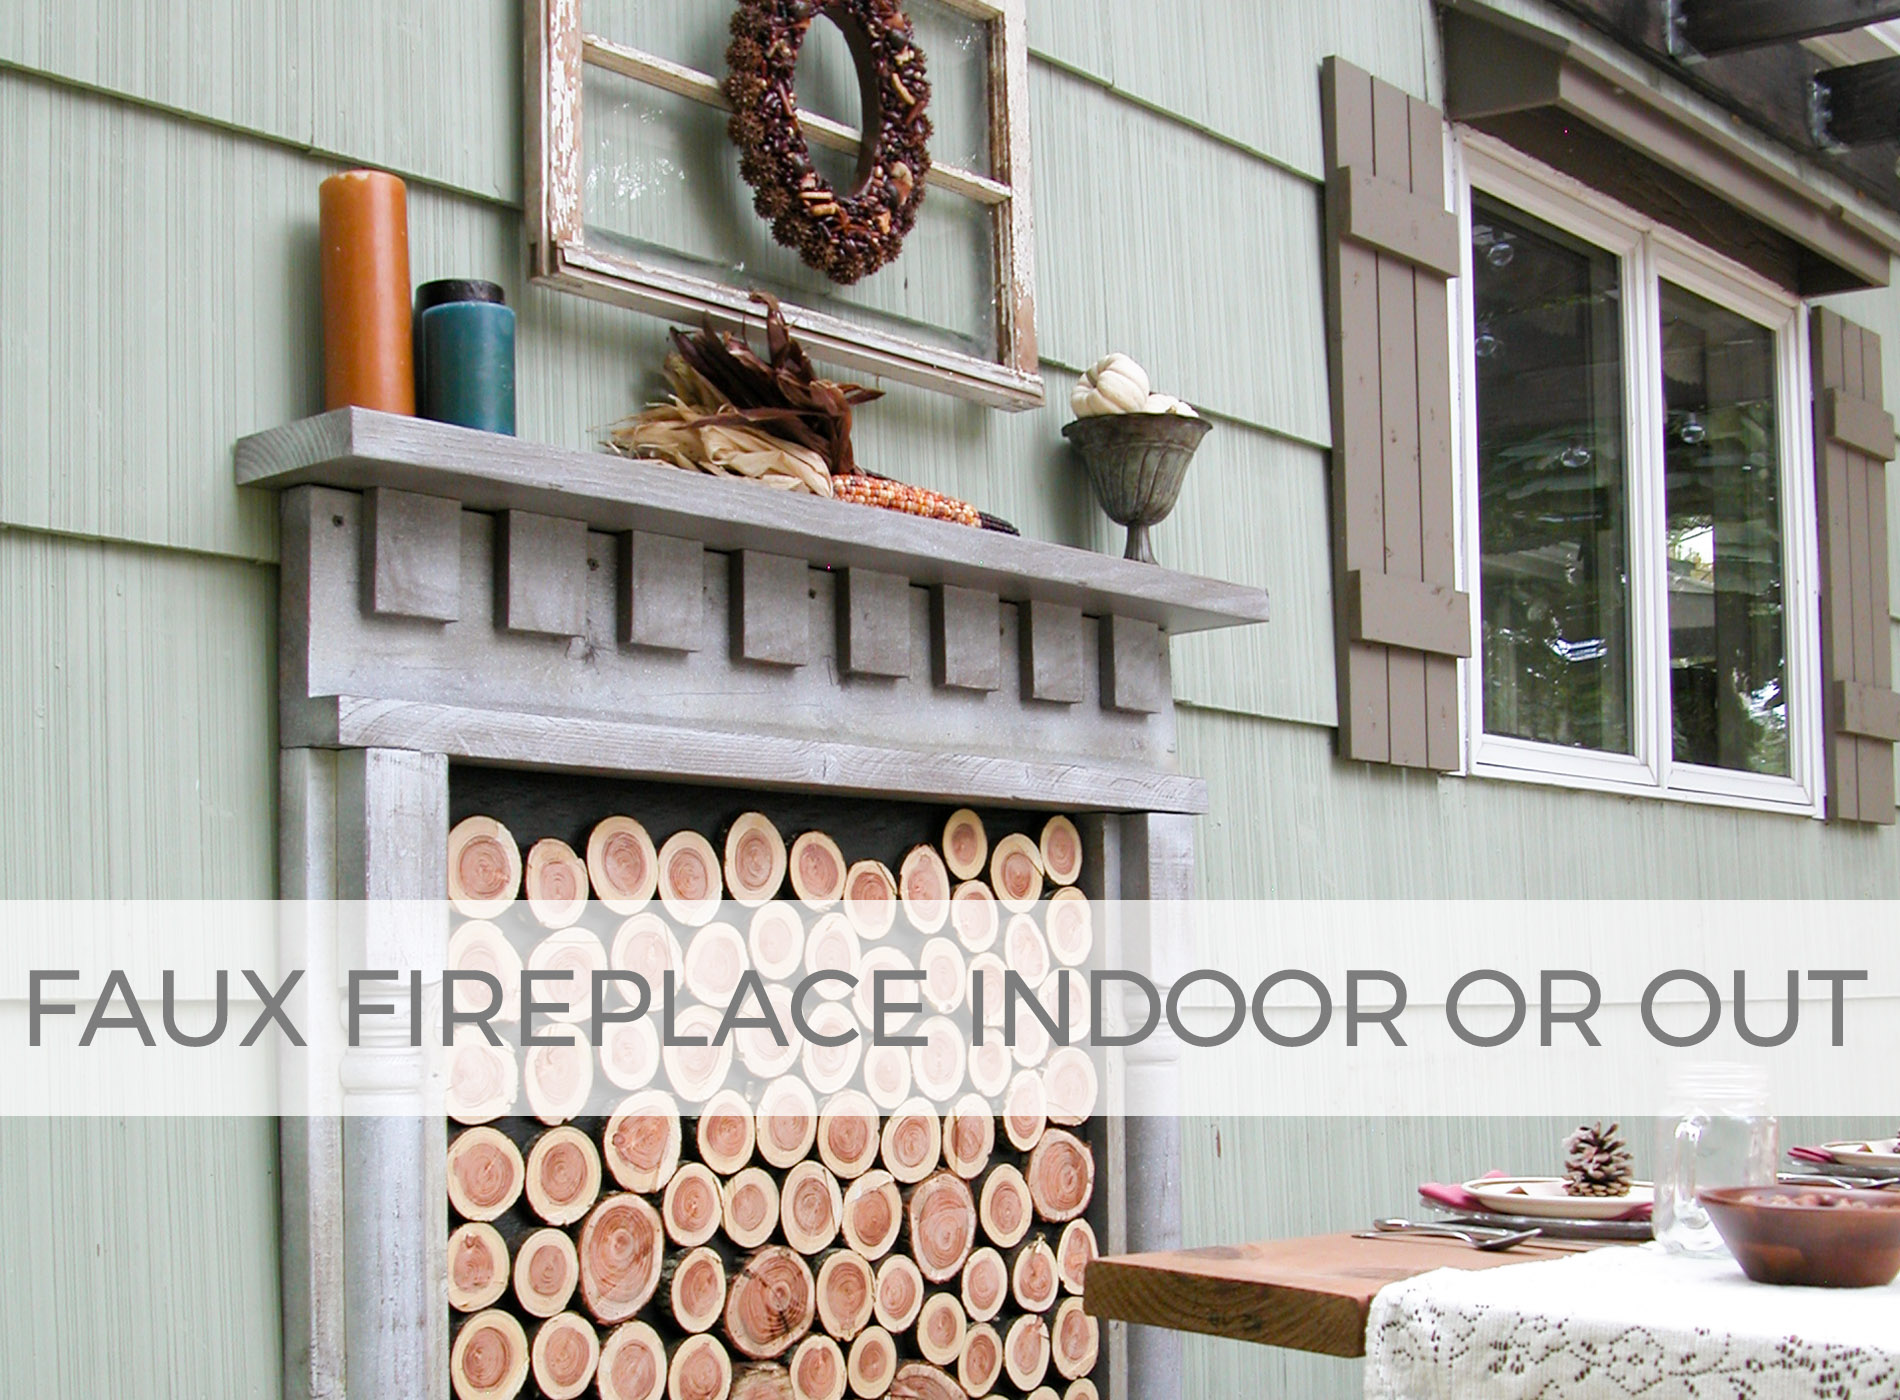 Create a faux fireplace for indoor or out by Larissa of Prodigal Pieces | prodigalpieces.com